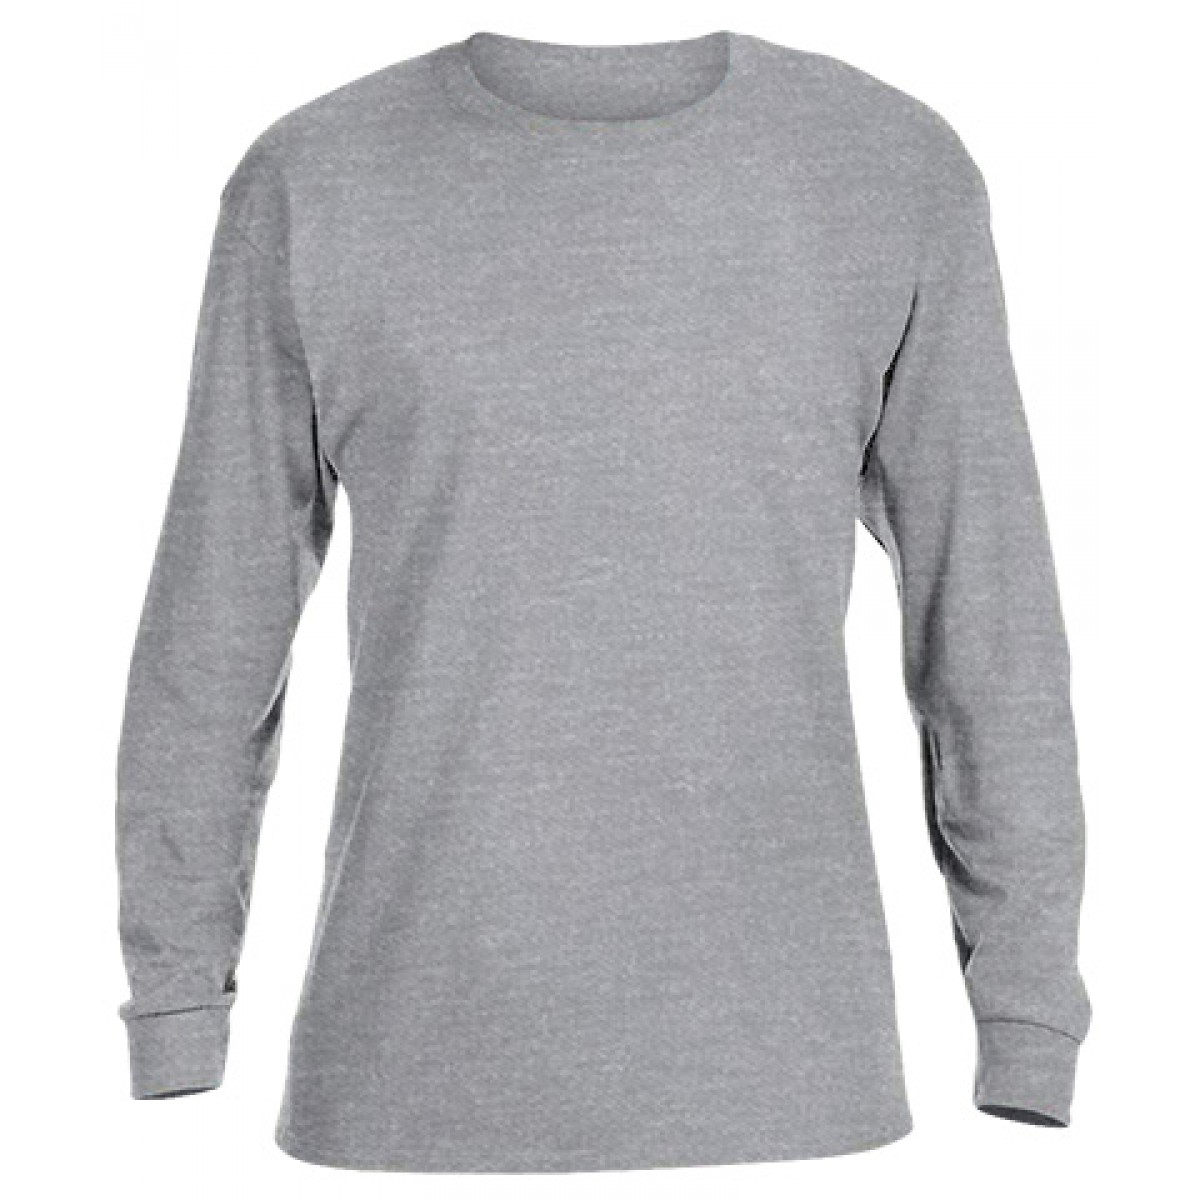 Basic Long Sleeve Crew Neck -Ash Gray-XL